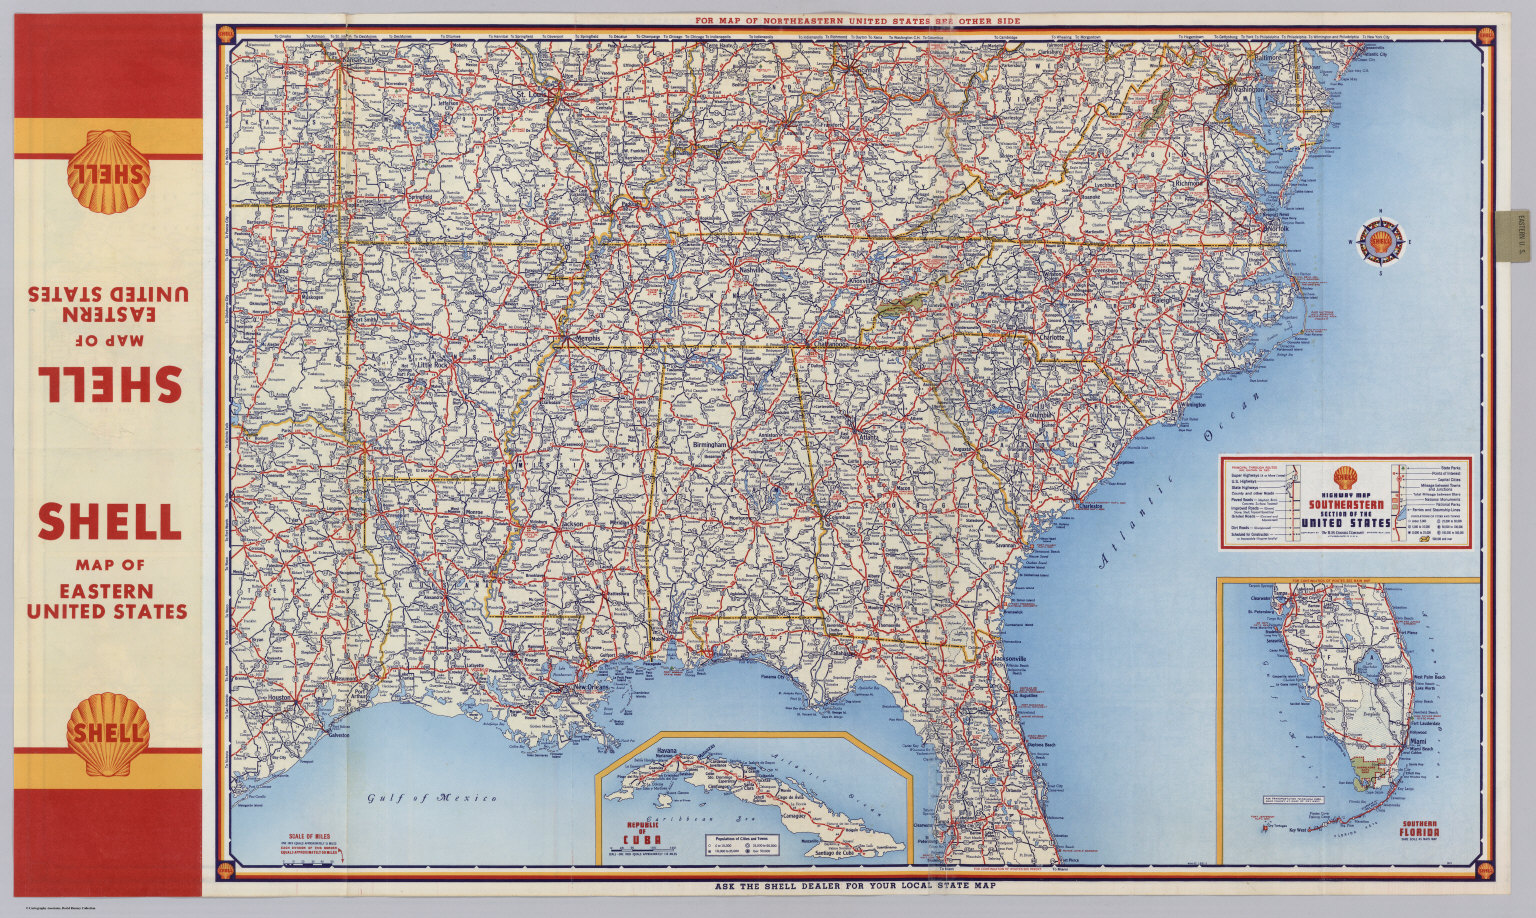 Shell Highway Map Southeastern Section Of The United States - Map southern states us